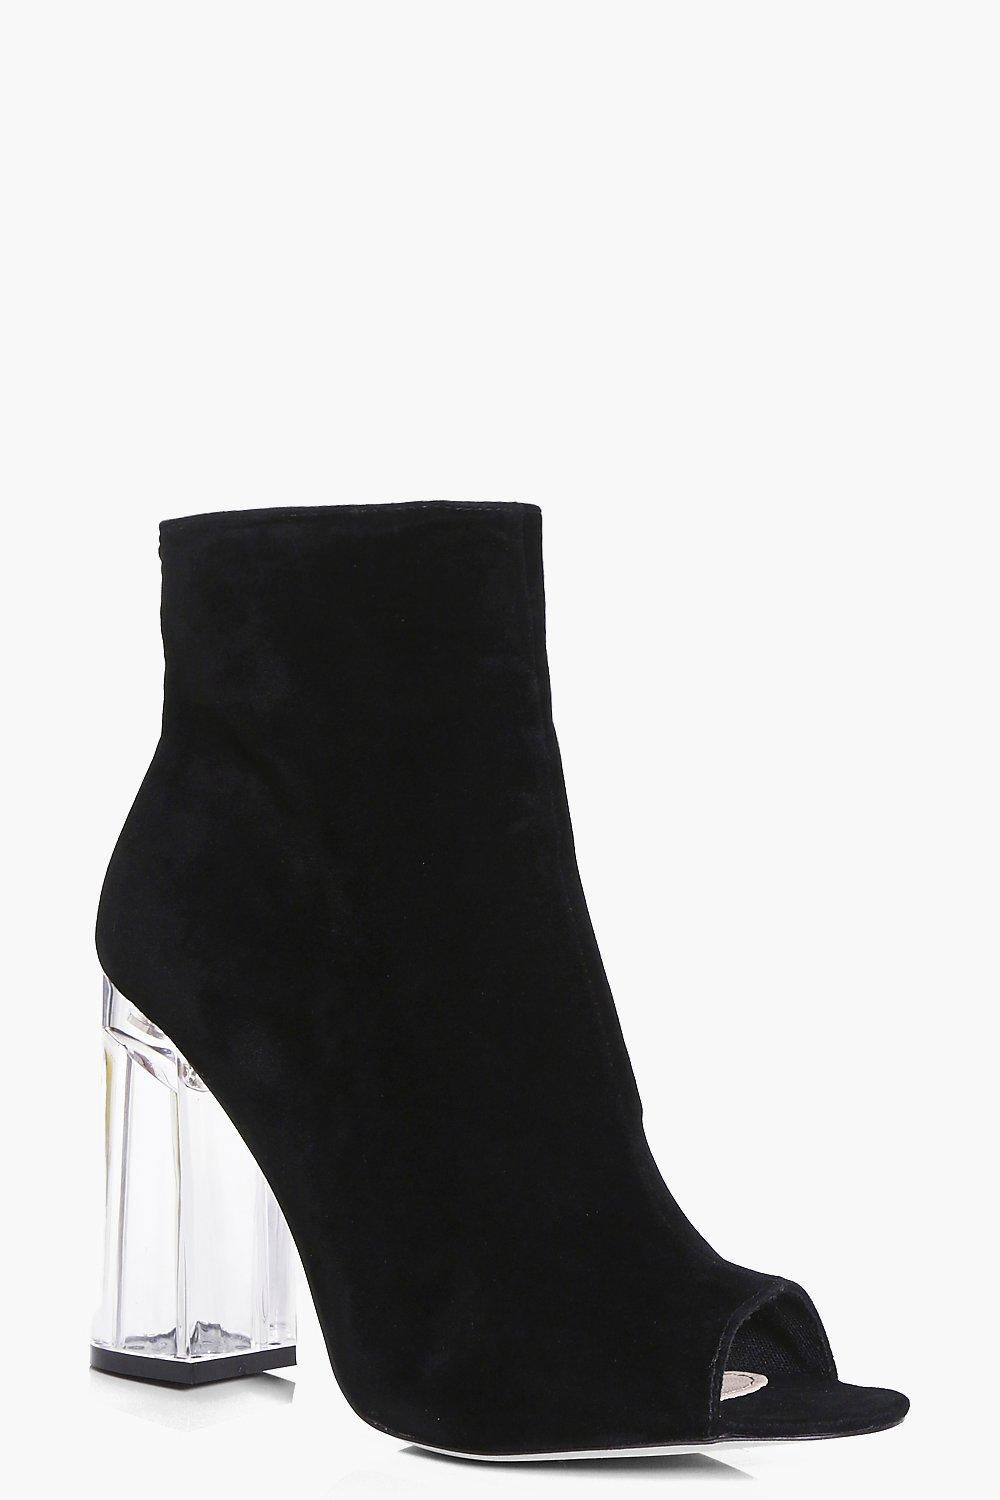 Emilia Clear Peeptoe Shoe Boot